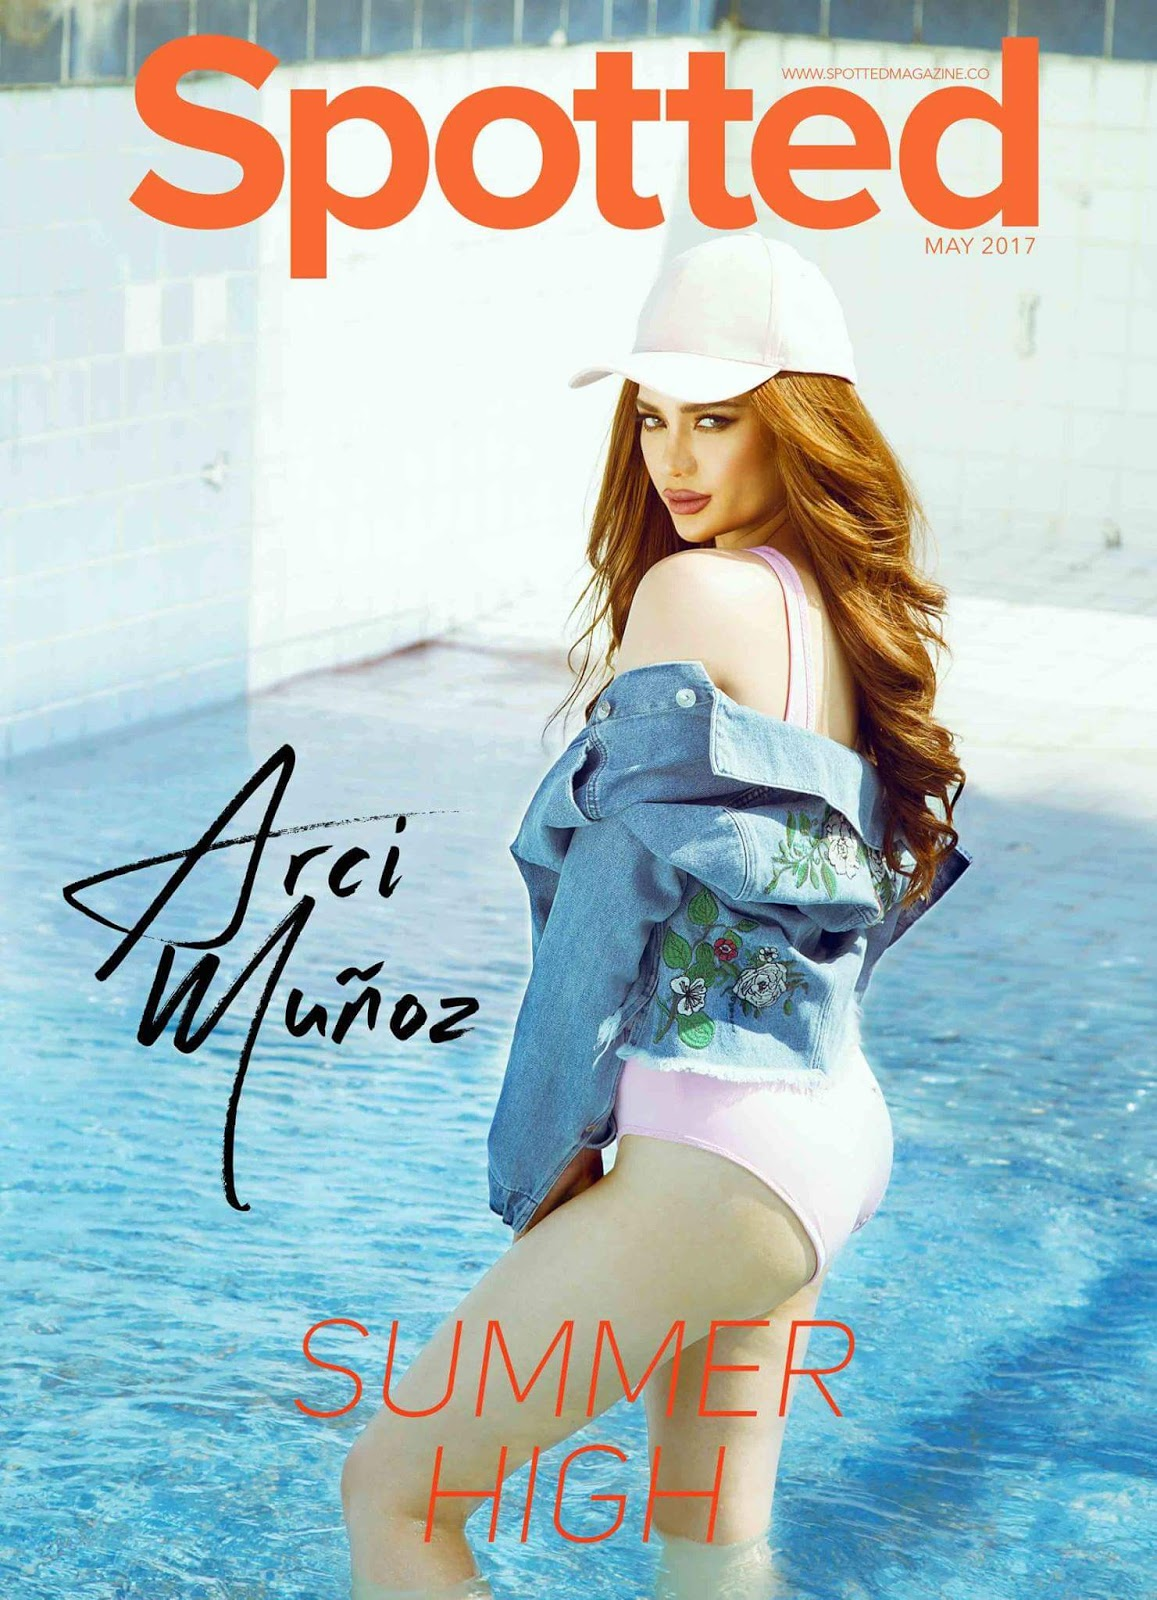 Arci Munoz on the Cover of Spotted